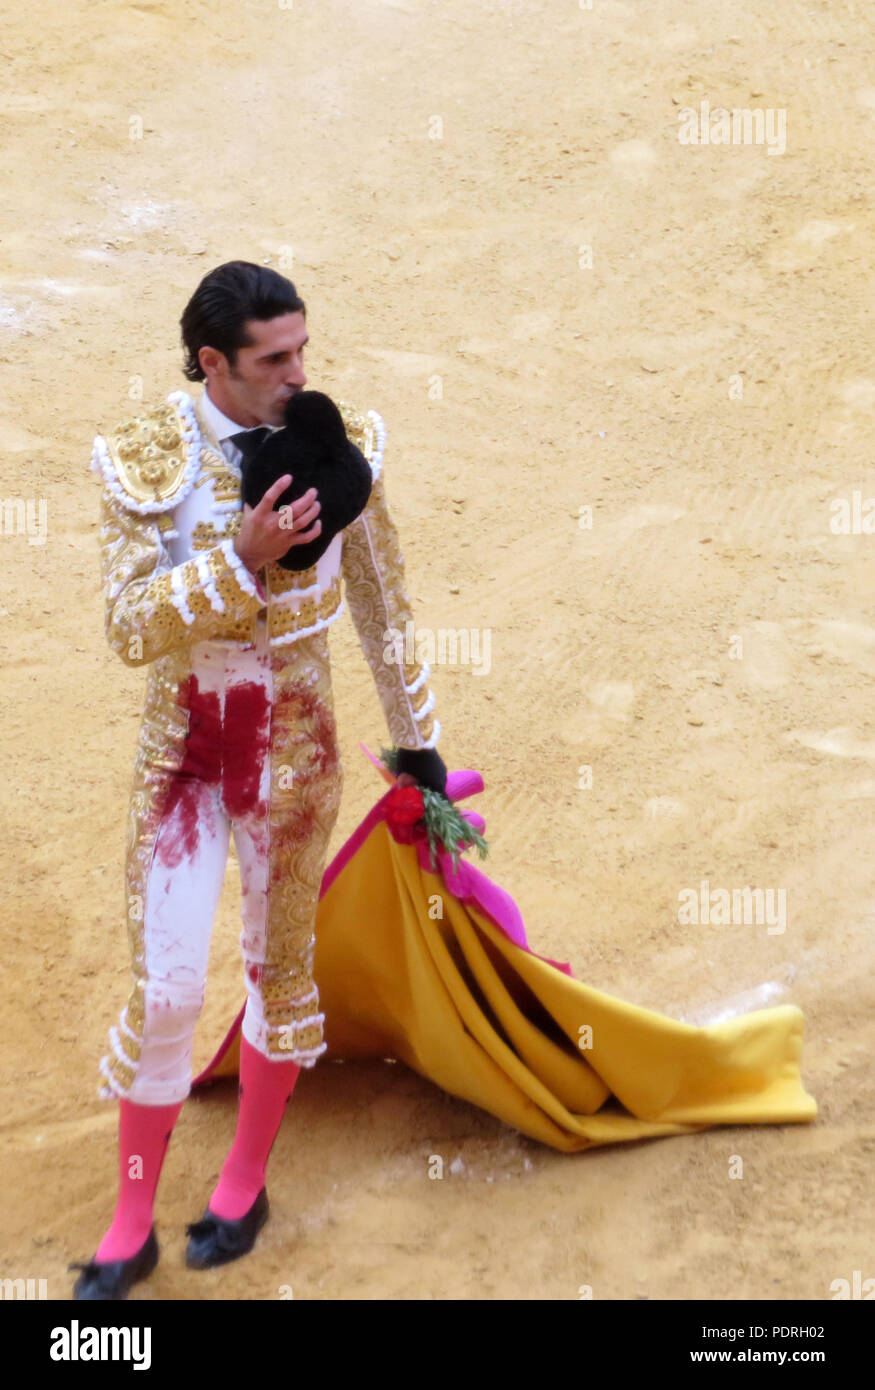 Bull fighter Talvante-Bloodstained. ' Victorious After The Kill'. Matador in the Plaza de Toros Granada, Andalusia, Spain. Spanish culture/tradition. - Stock Image